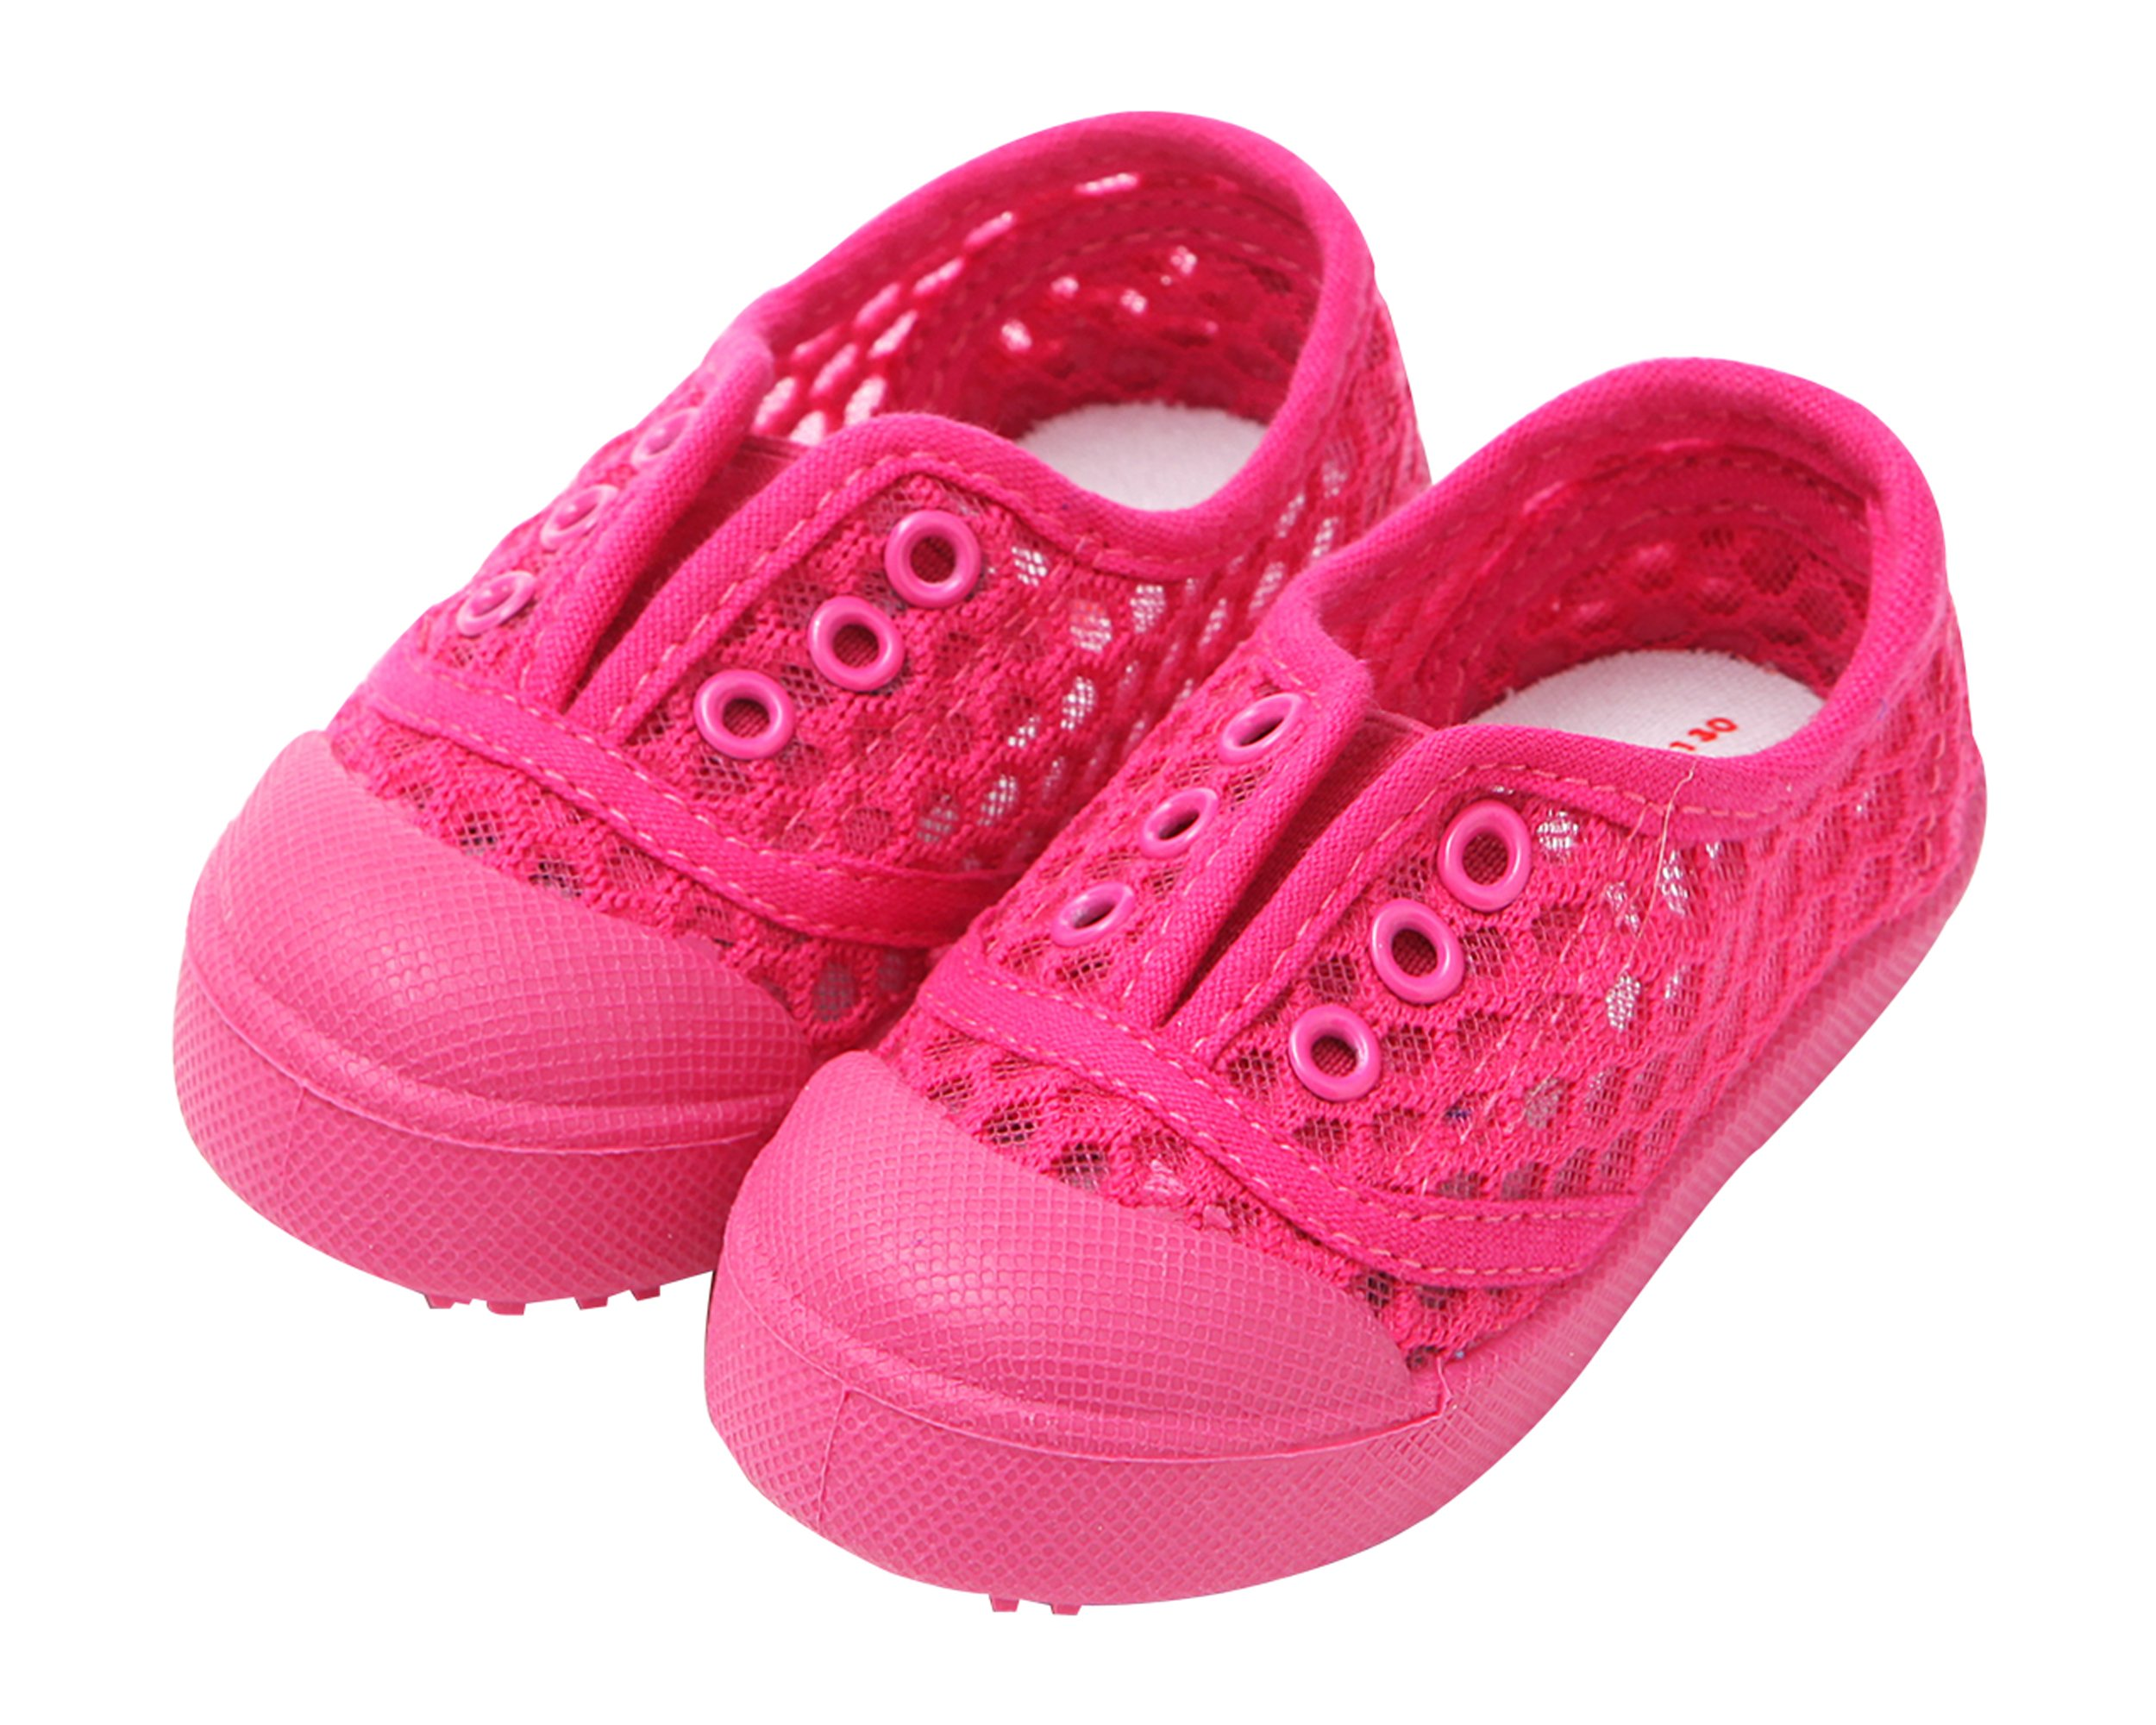 Ozkiz Baby Girls Shoes Summer Sneakers Slip-On Little Kids Toddler Pink 160